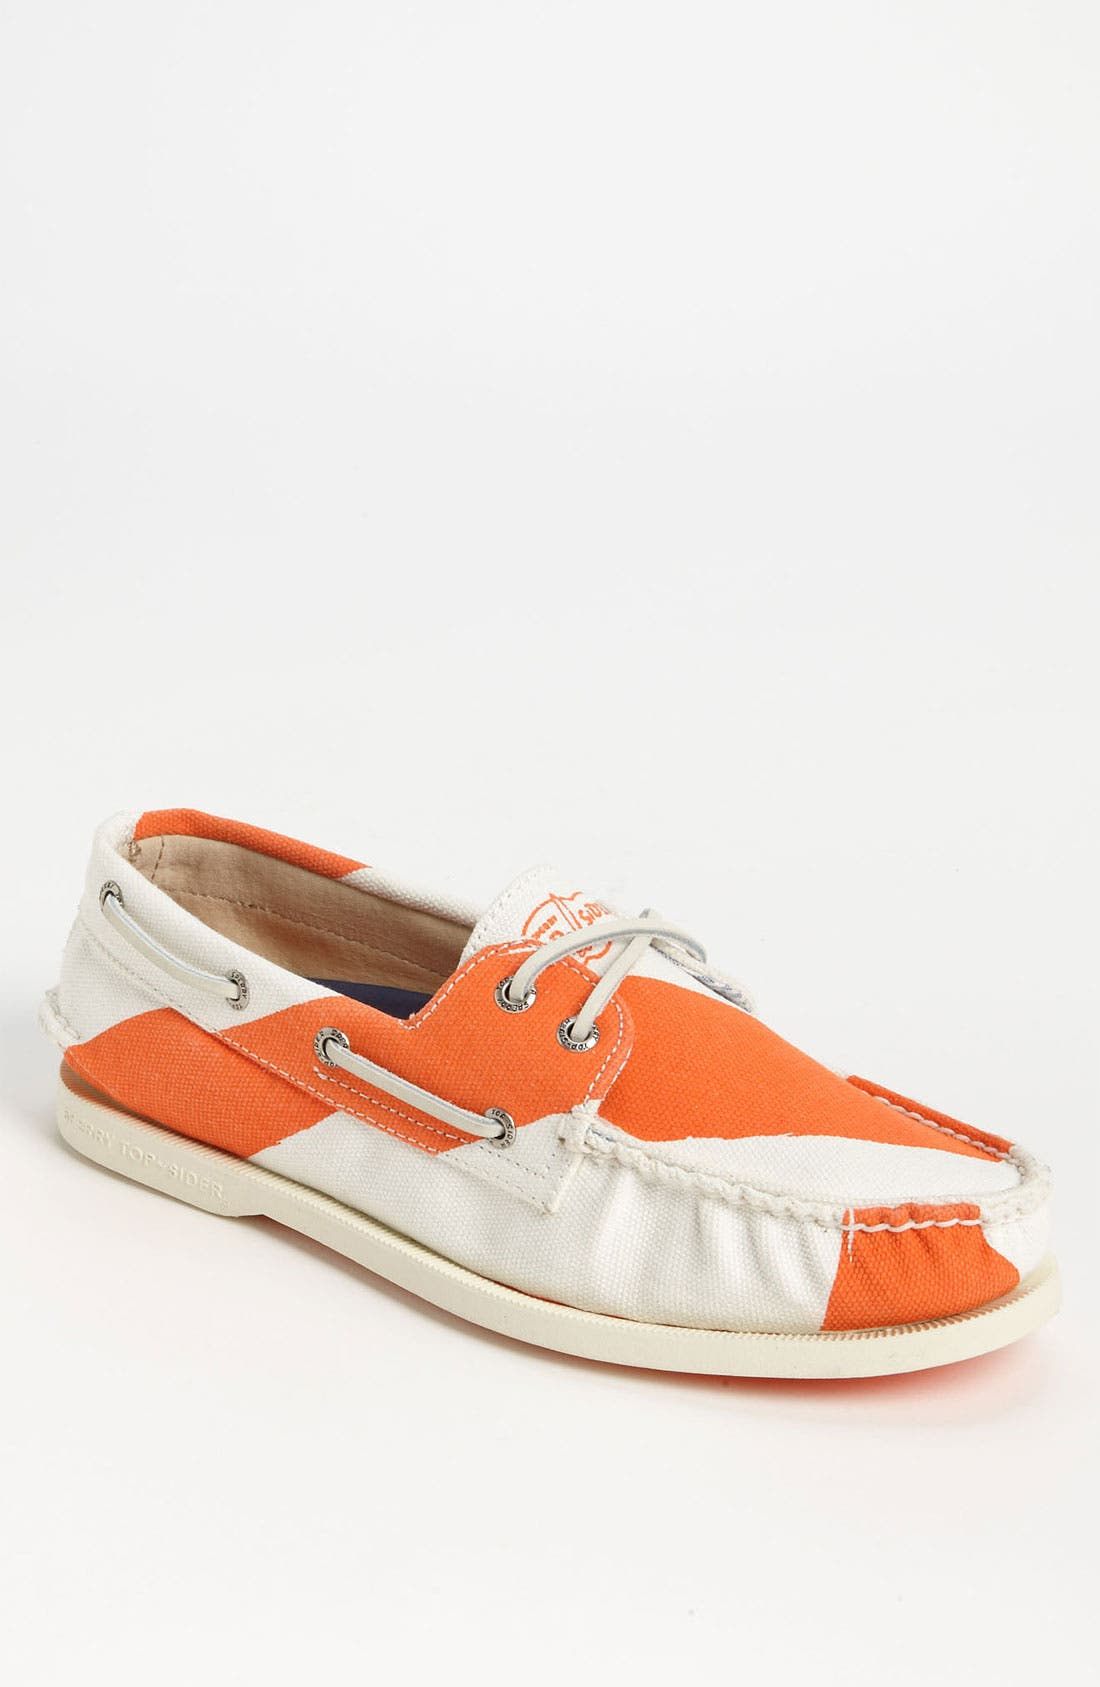 Alternate Image 1 Selected - Sperry Top-Sider® 'Authentic Original' Painted Boat Shoe (Men)